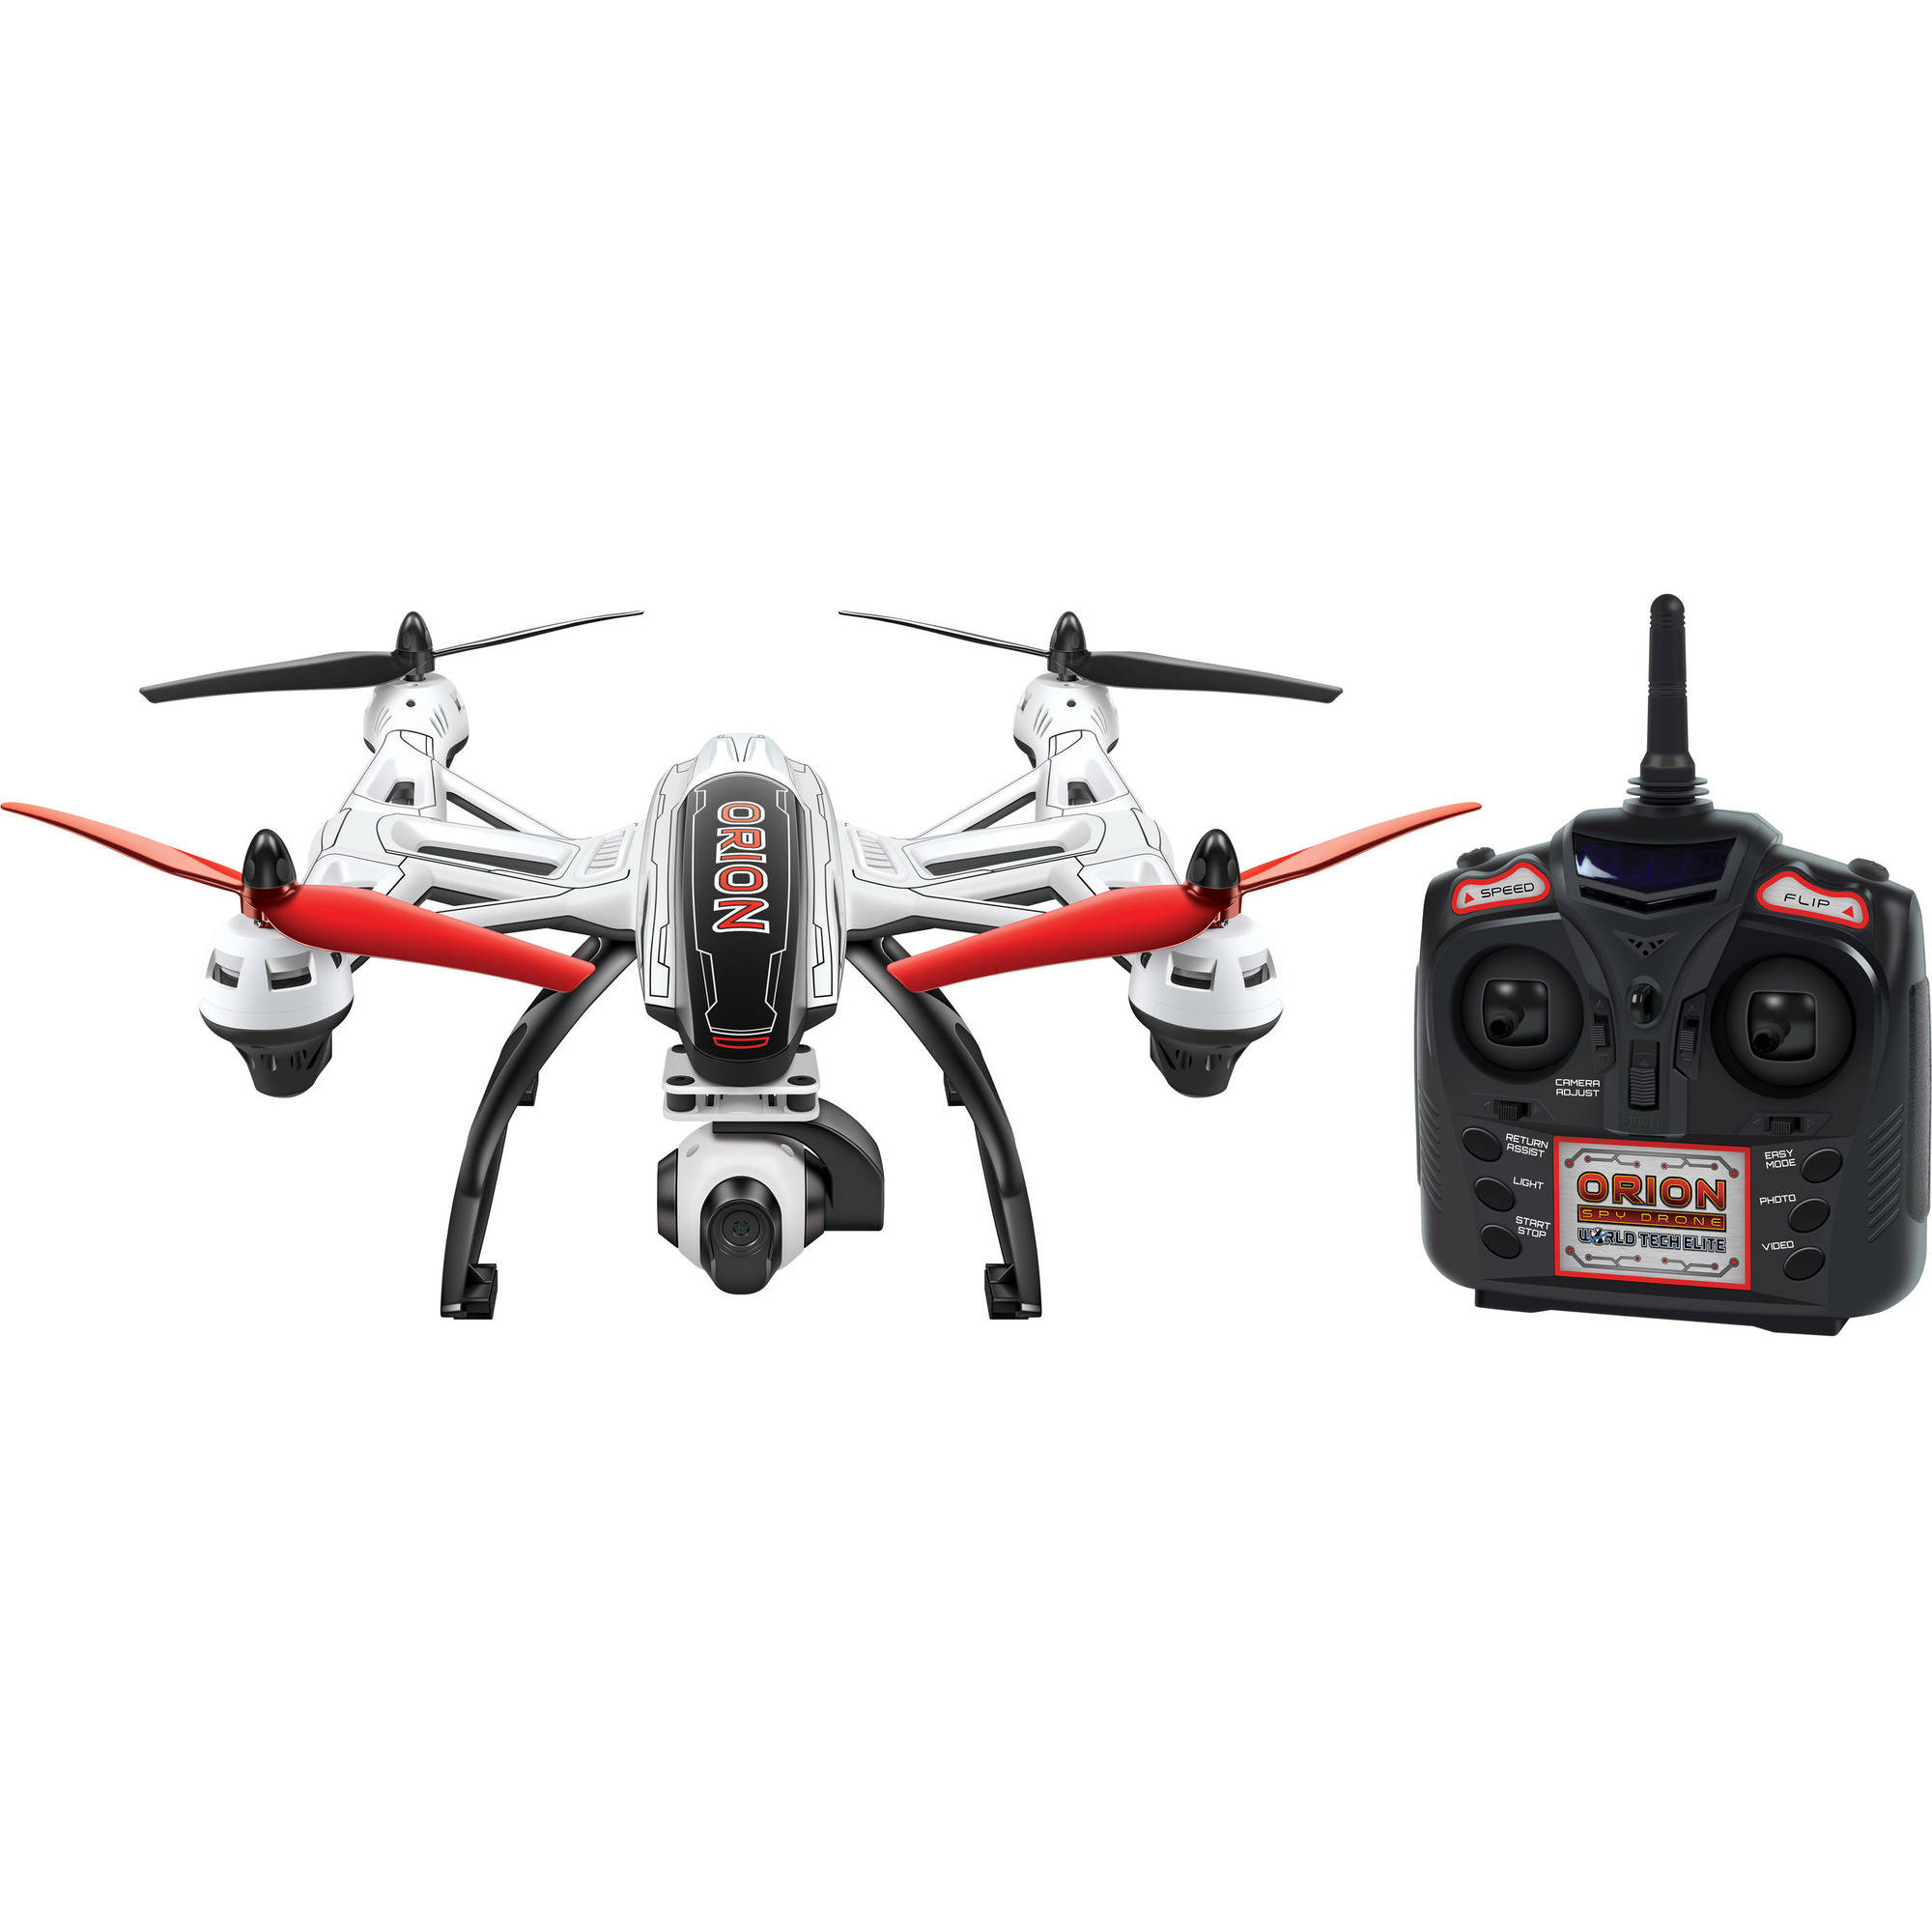 Elite Orion 1-Axis Gimbal 2.4GHz 4.5-Channel R C HD Camera Drone by World Tech Toys